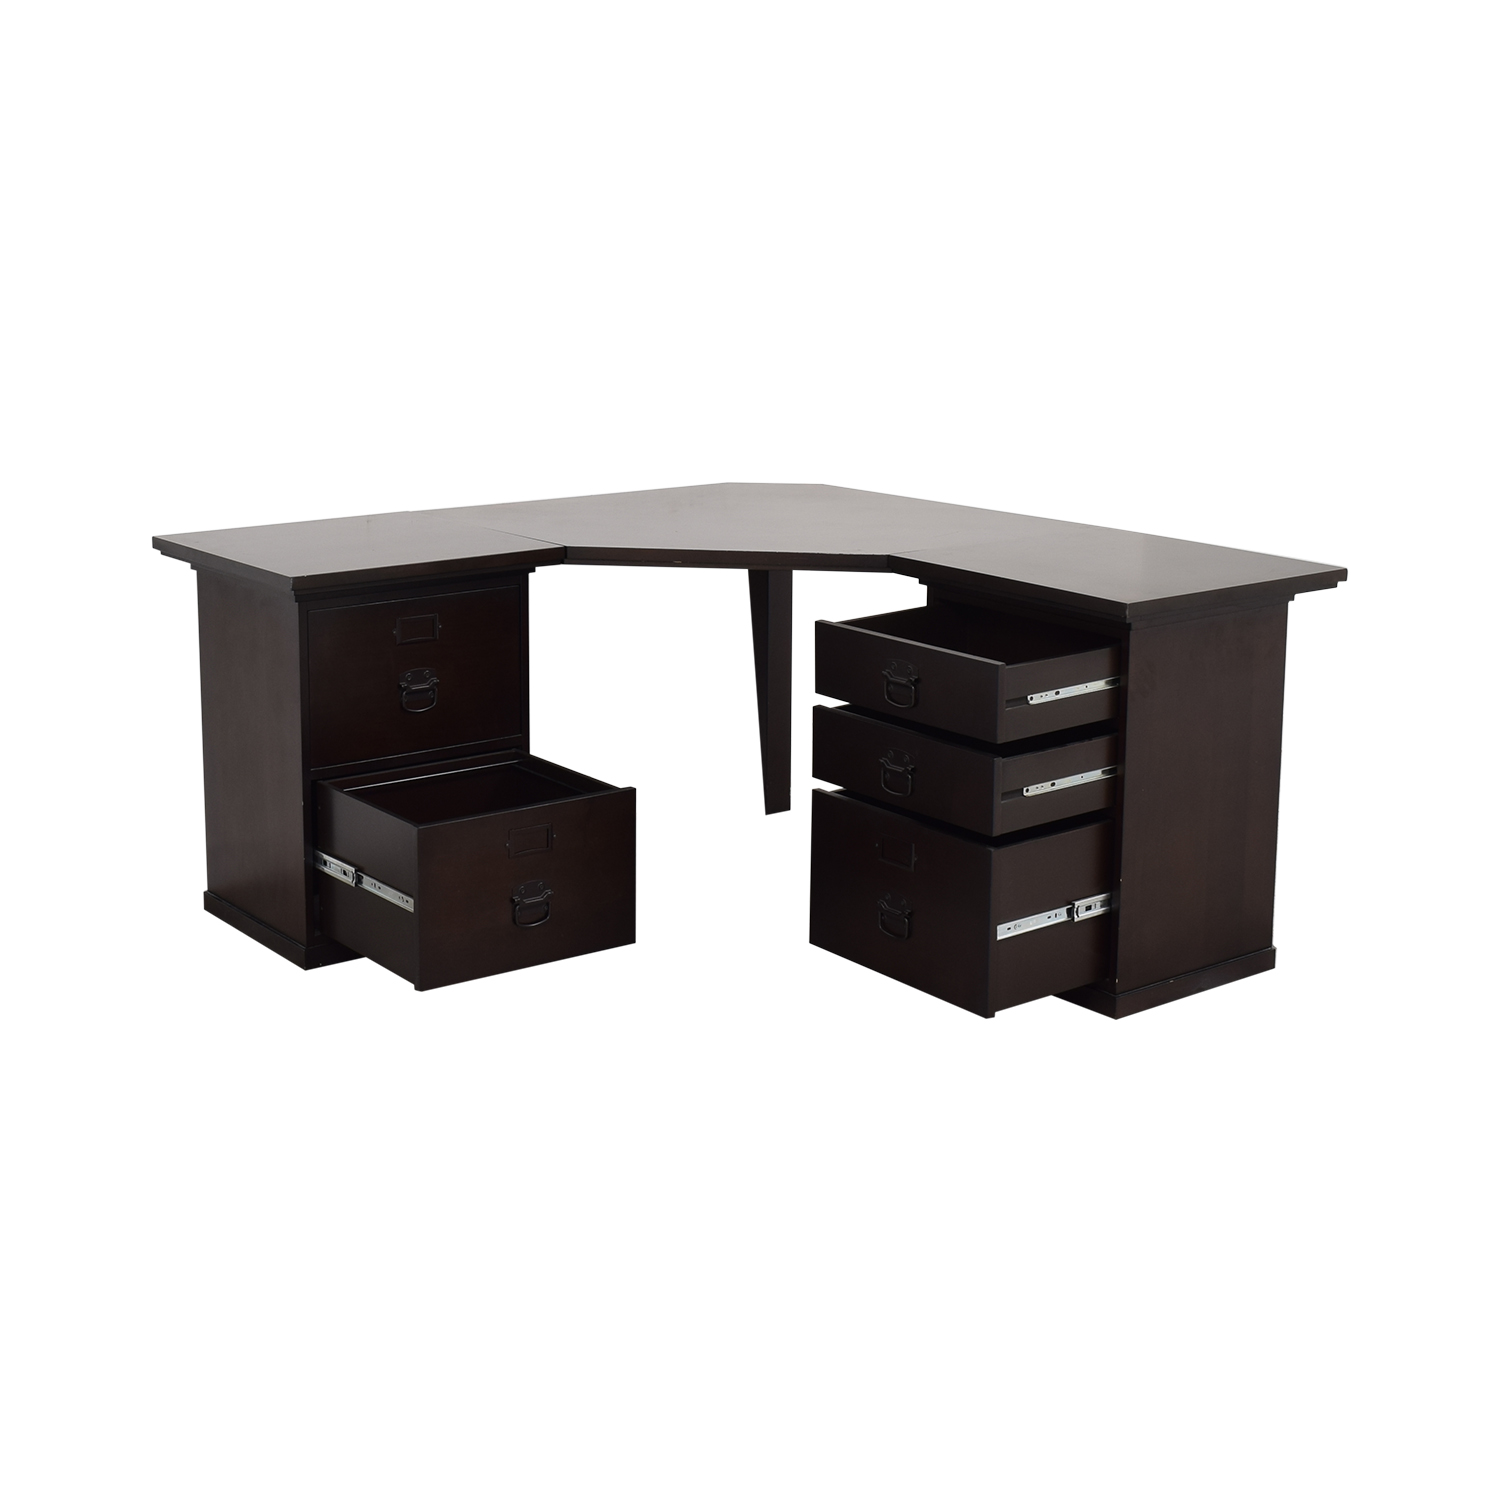 West Elm West Elm Corner Desk price